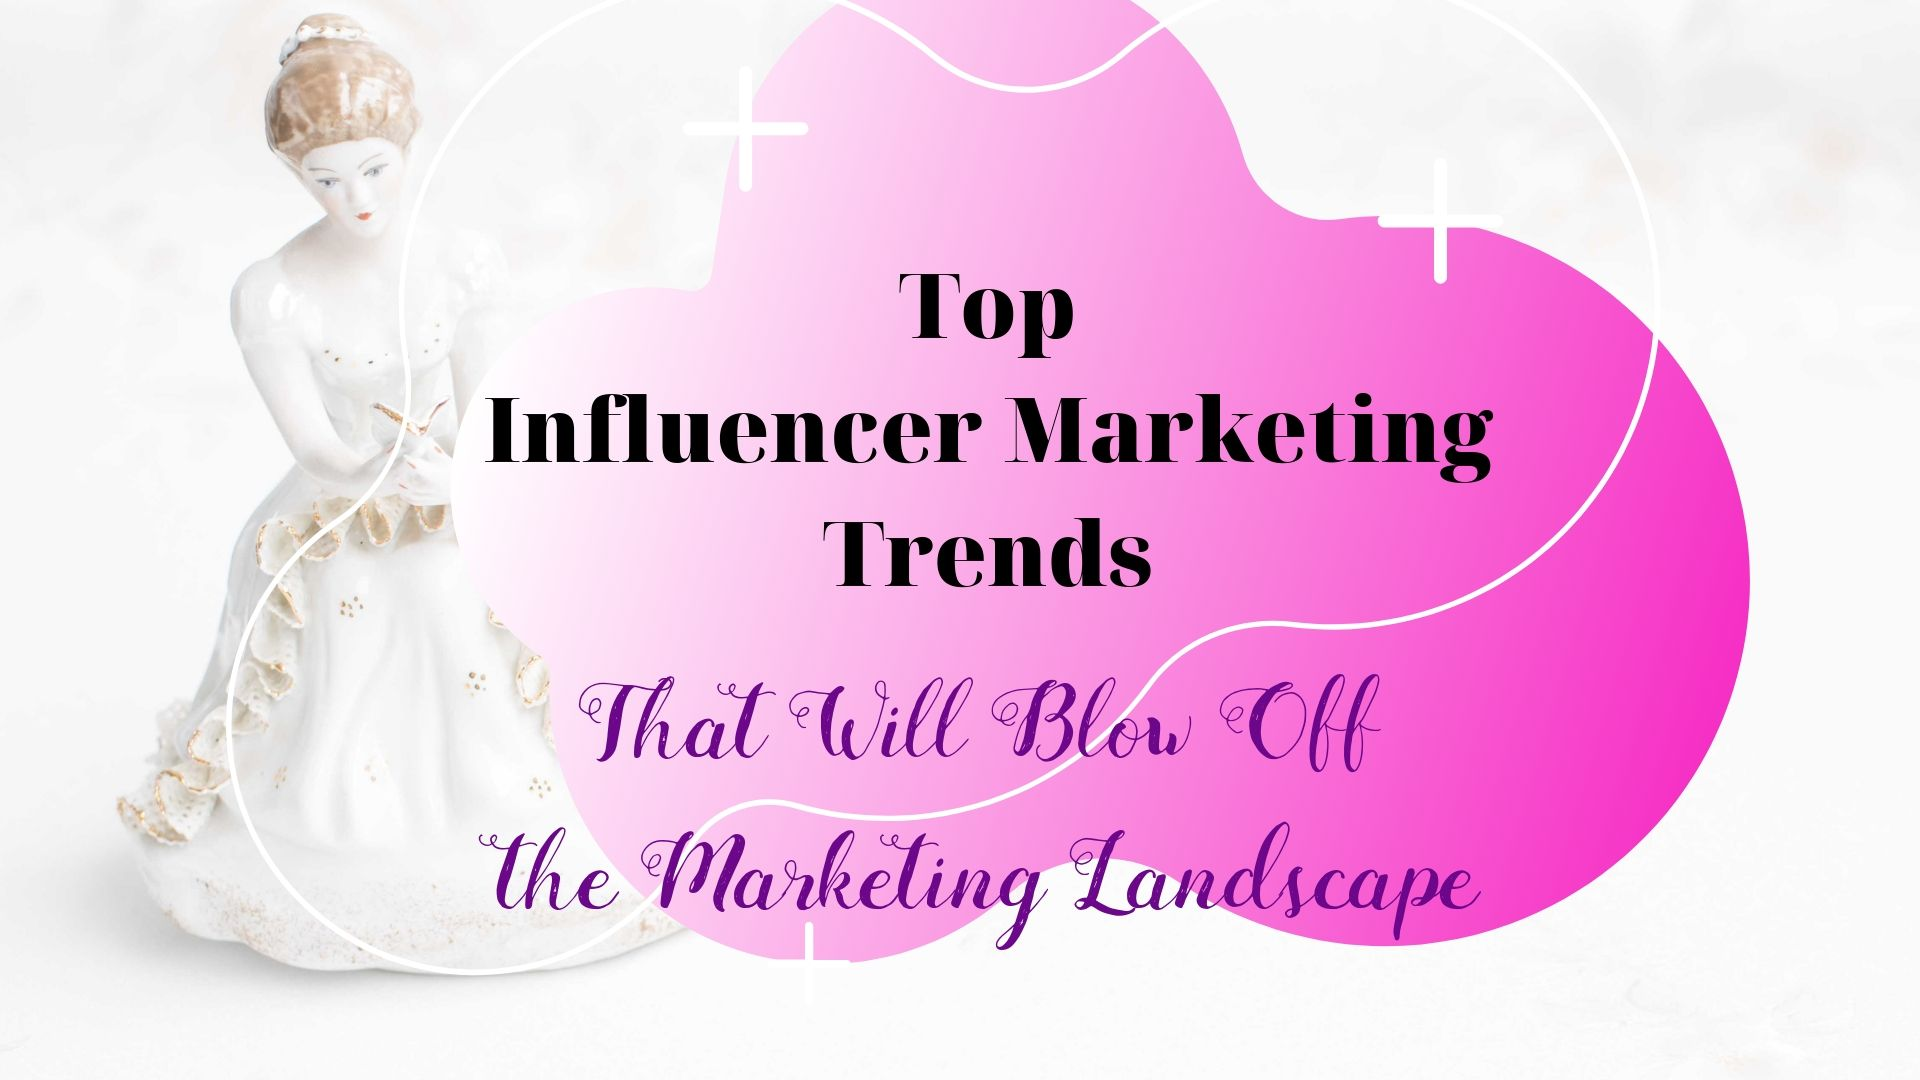 Top Influencer Marketing Trends